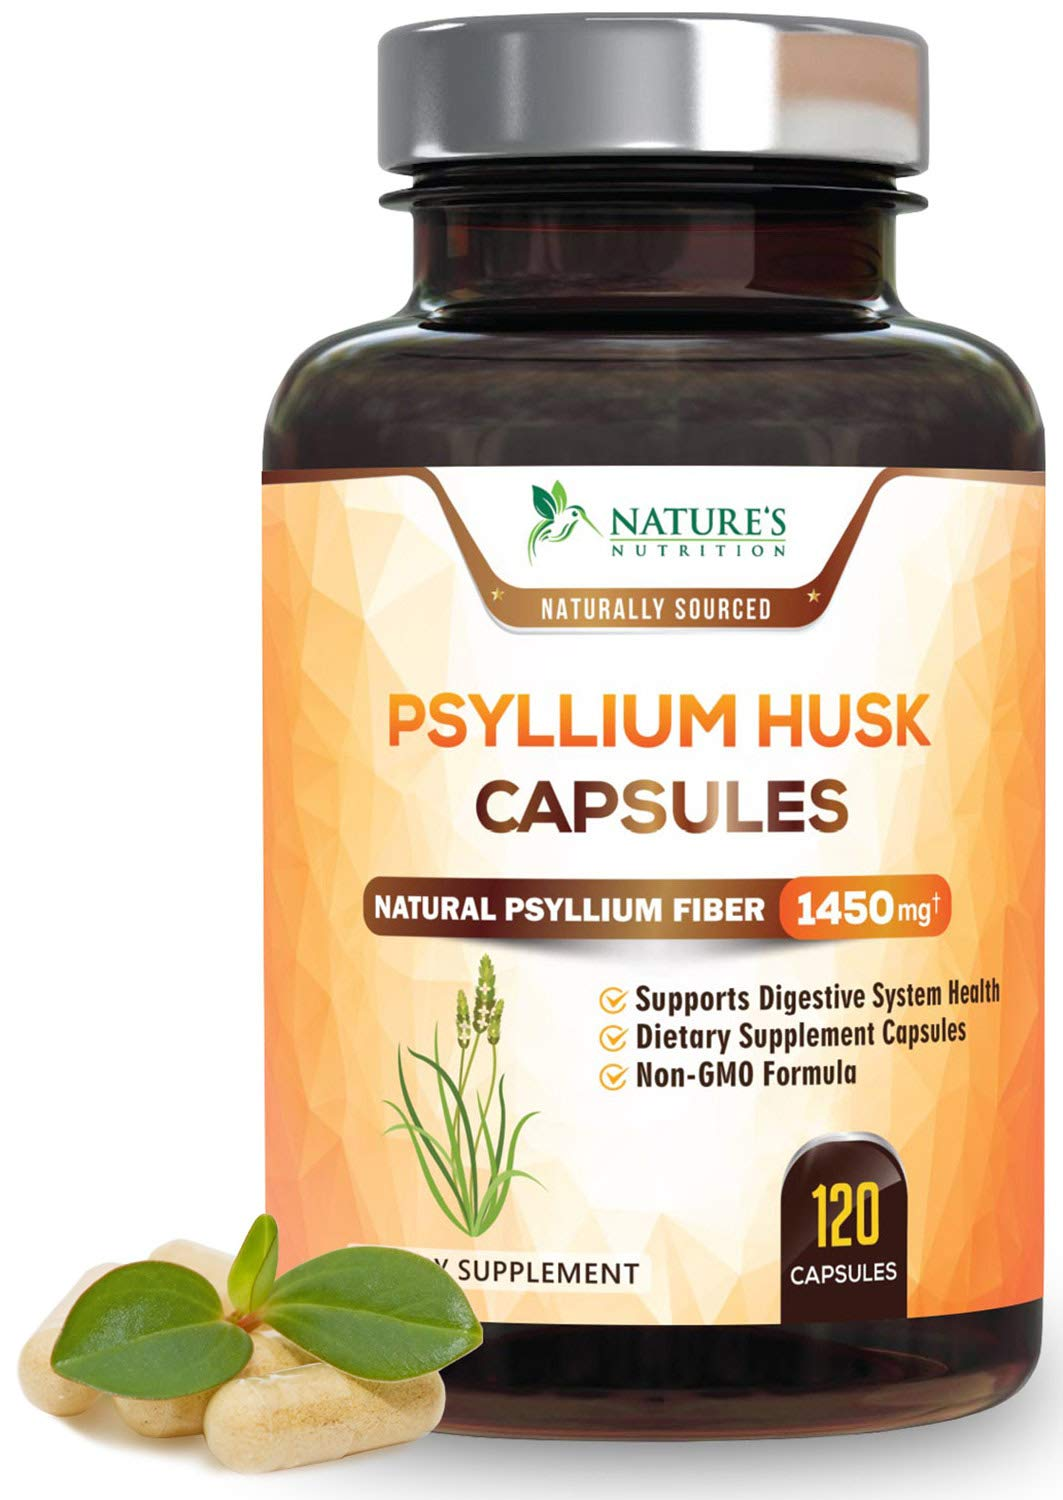 Psyllium Husk Capsules, Max Potency Dietary Fiber 1450mg - Psyllium Powder Supplement, 100% Soluble Pills, Helps with Constipation, Digestion, Intestinal Health and Natural Weight Loss - 120 Capsules